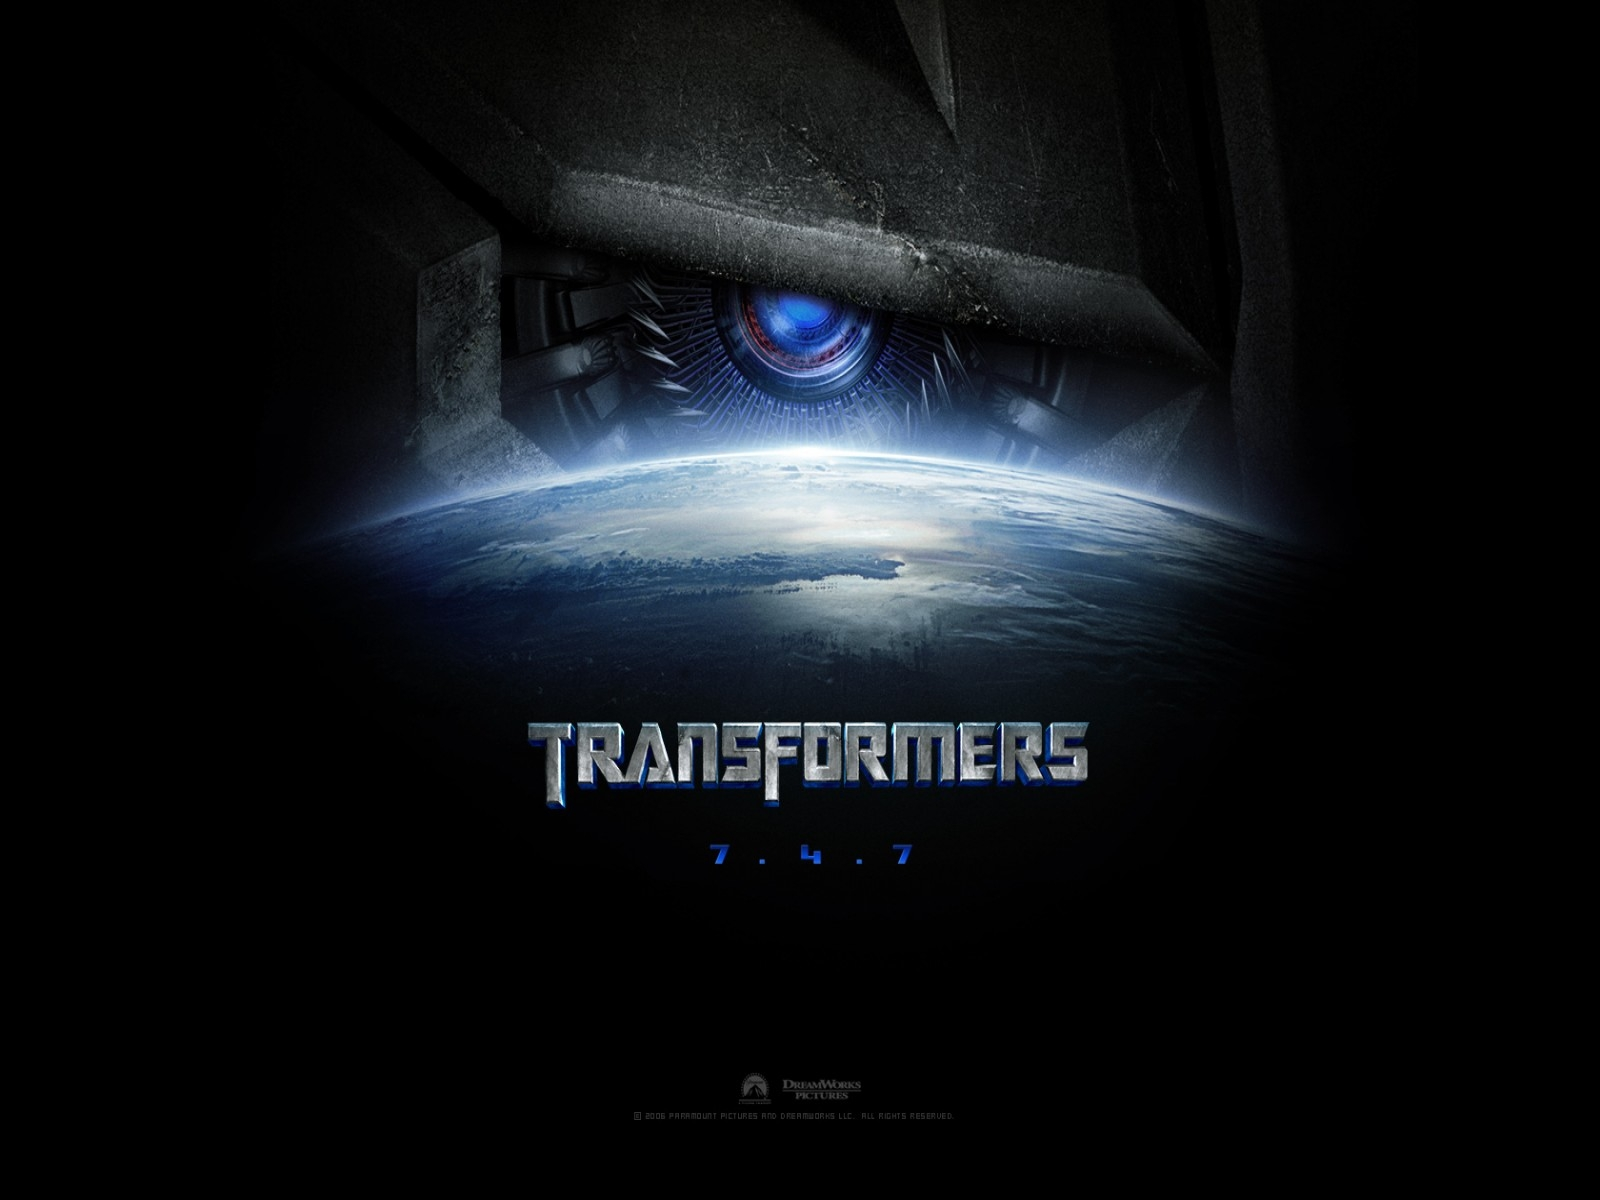 wallpaper del film Transformers